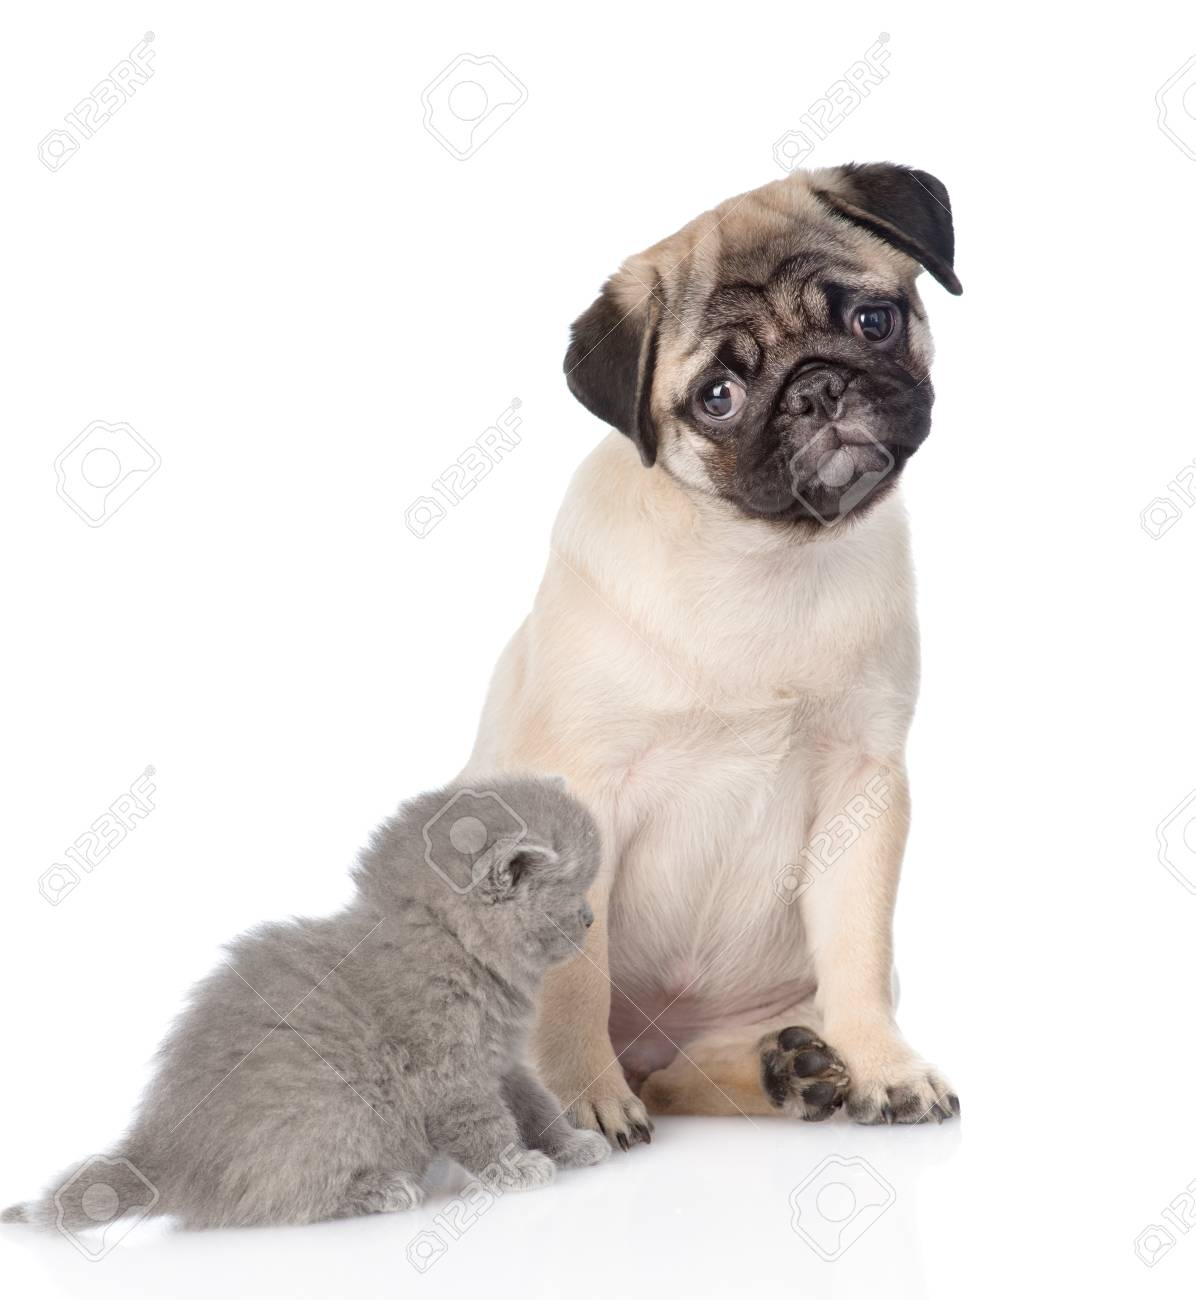 Pug Puppy Sitting With Newborn Kitten Isolated On White Background Stock Photo Picture And Royalty Free Image Image 95645653